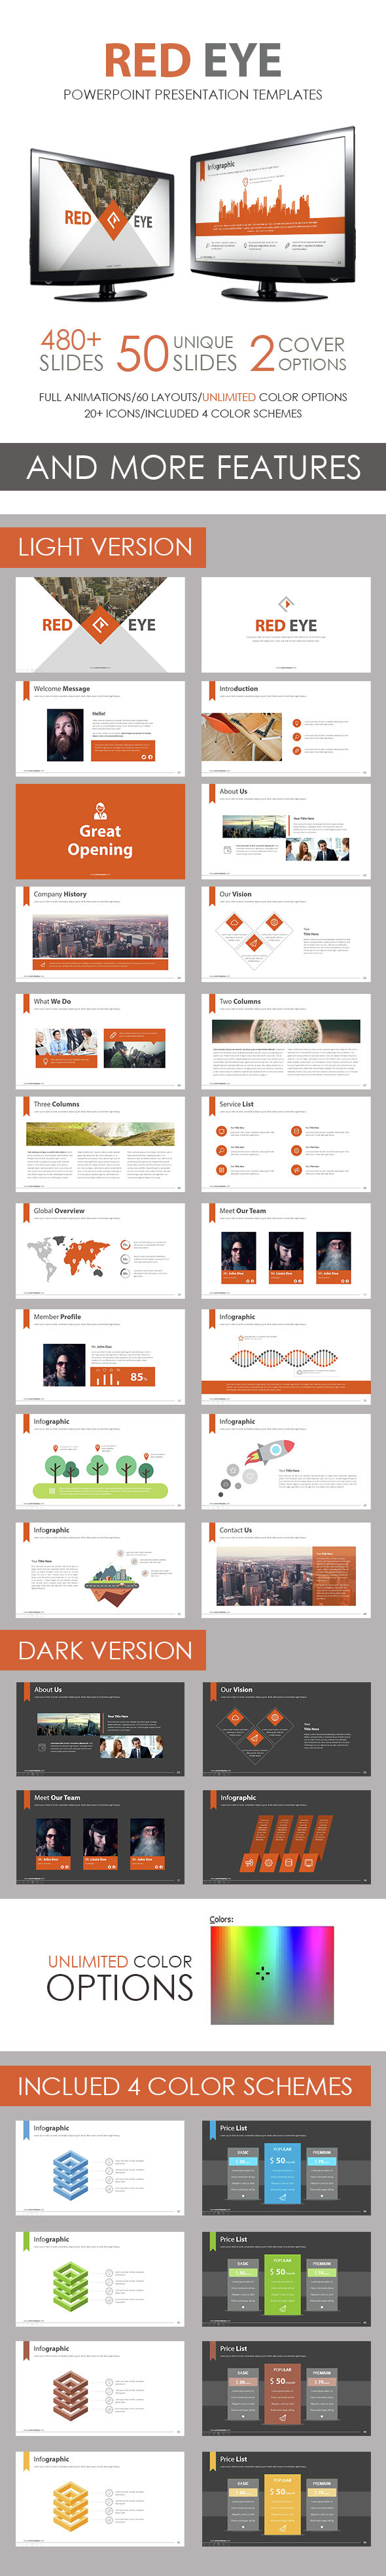 Red Eye PowerPoint Template - Business PowerPoint Templates